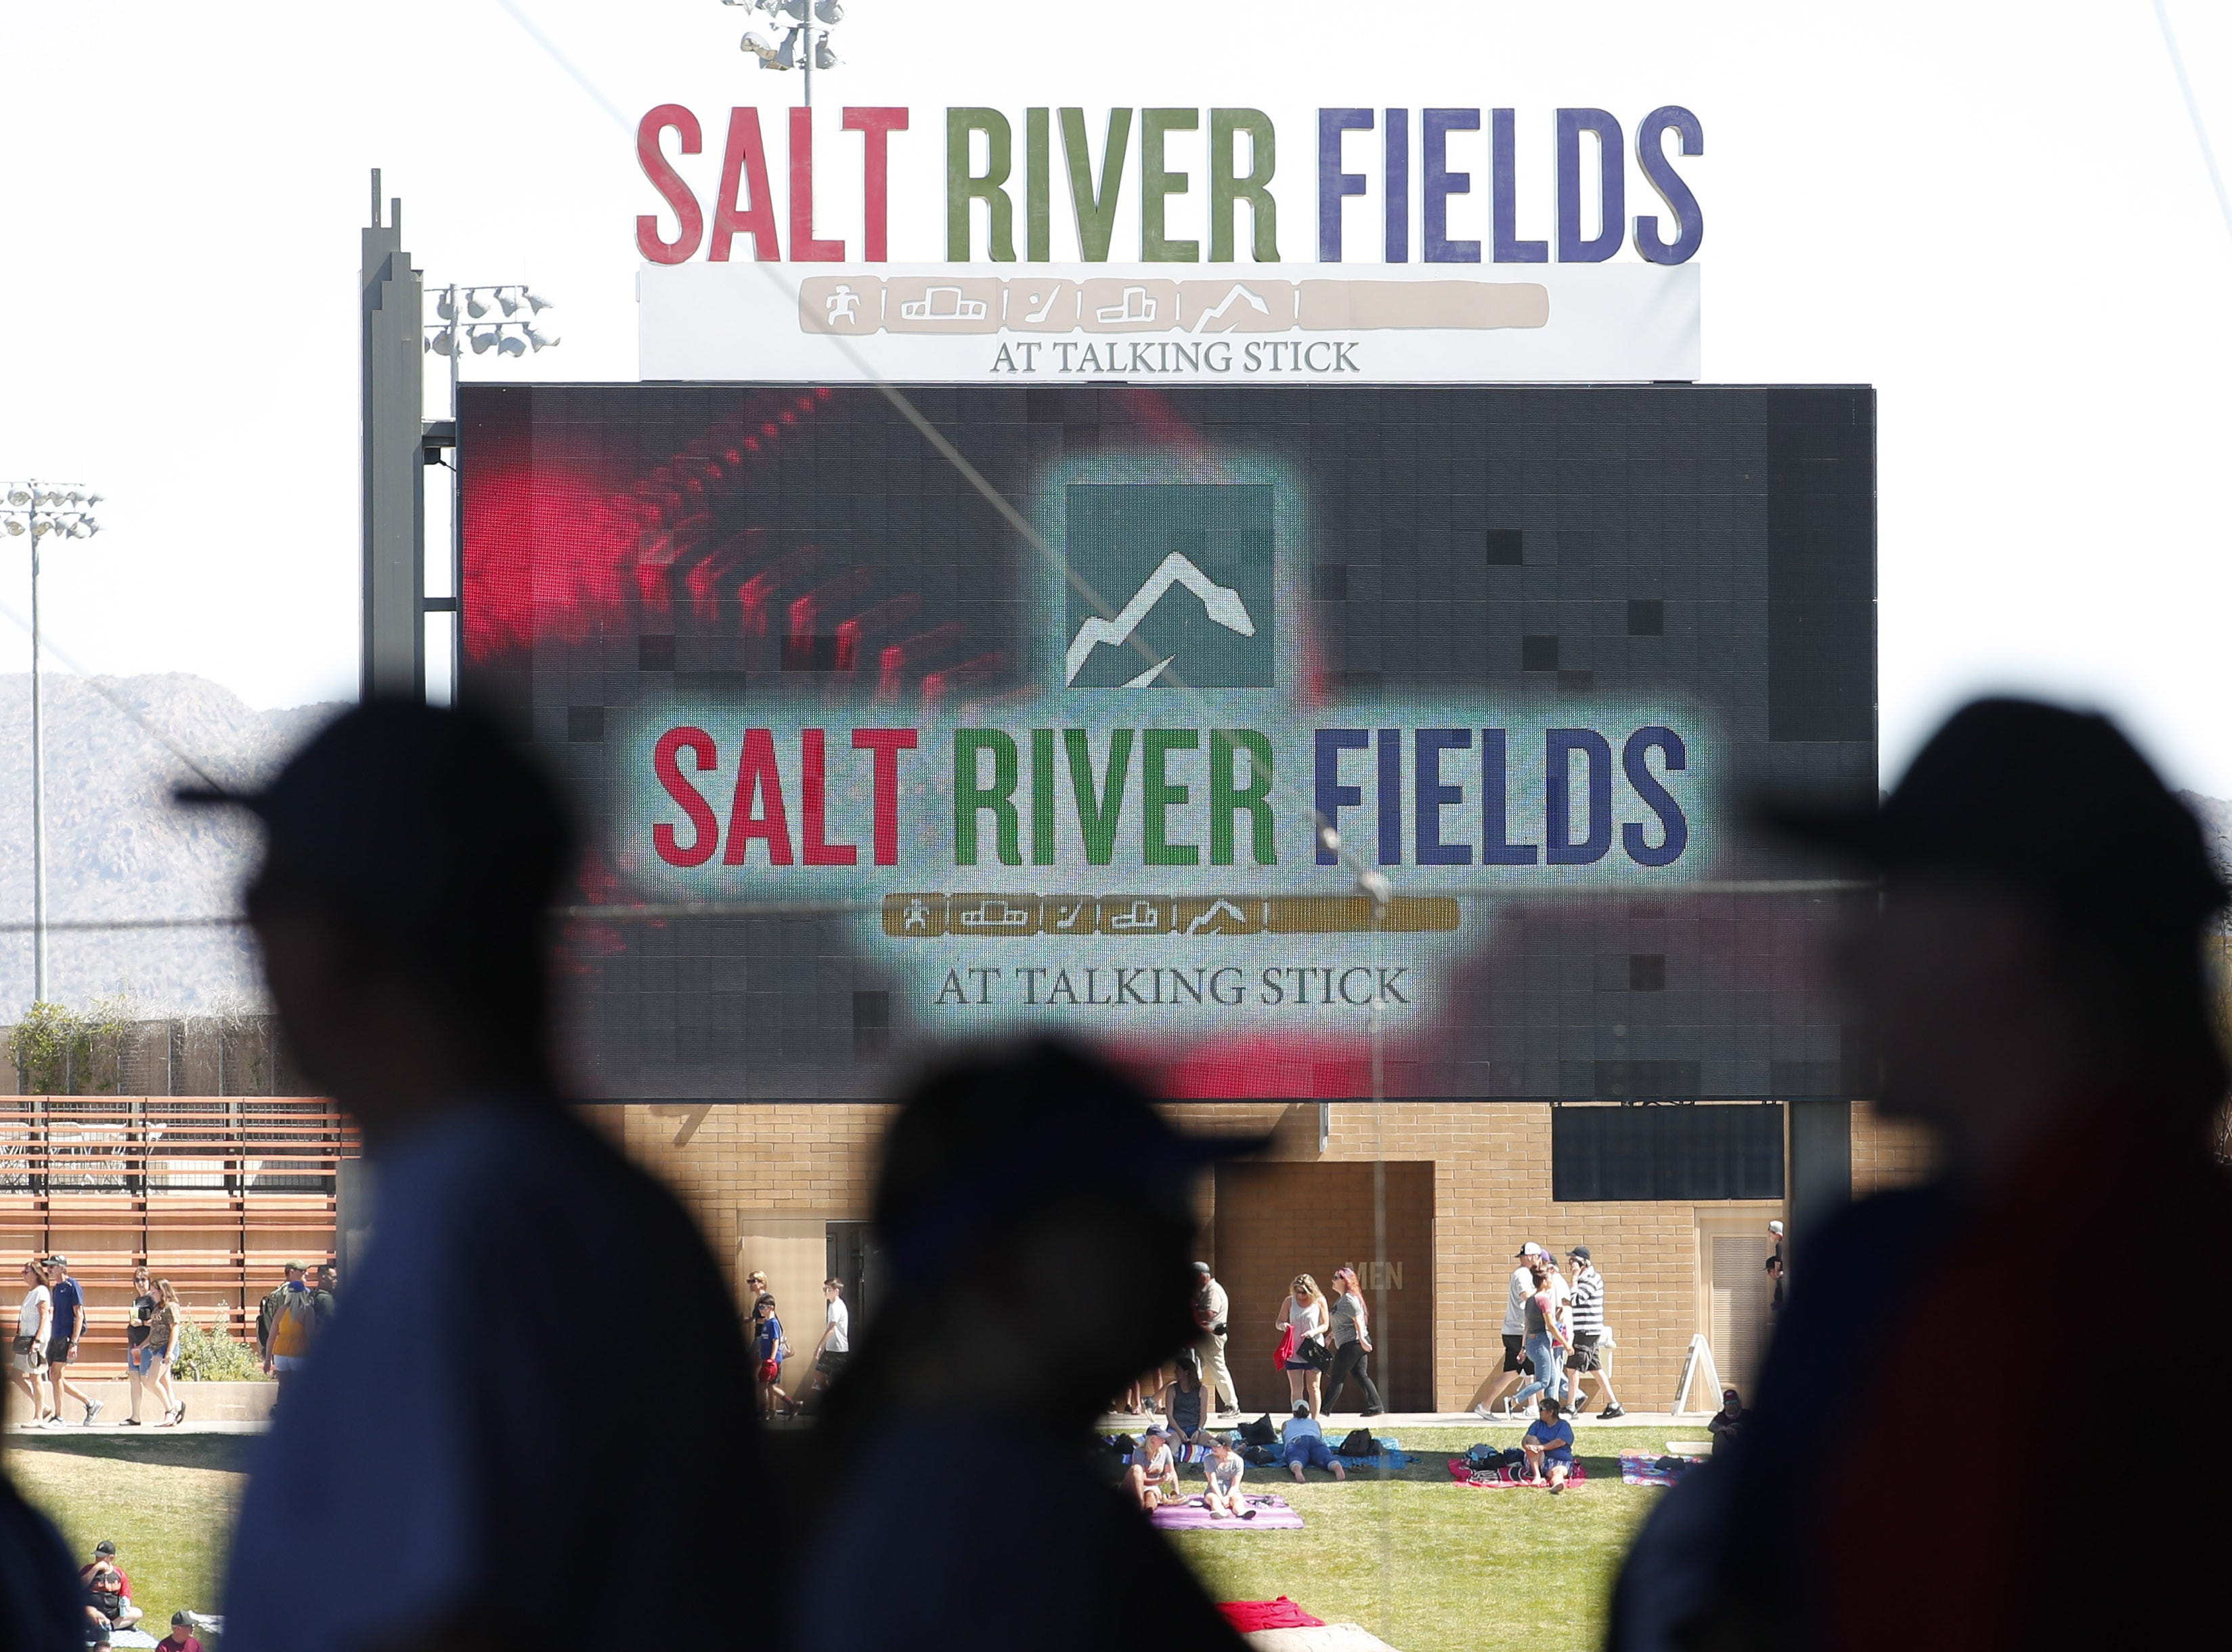 Fans walk along the concourse during a spring training between the Arizona Diamondbacks and the Milwaukee Brewers at Salt River Fields at Talking Stick March 24, 2019.